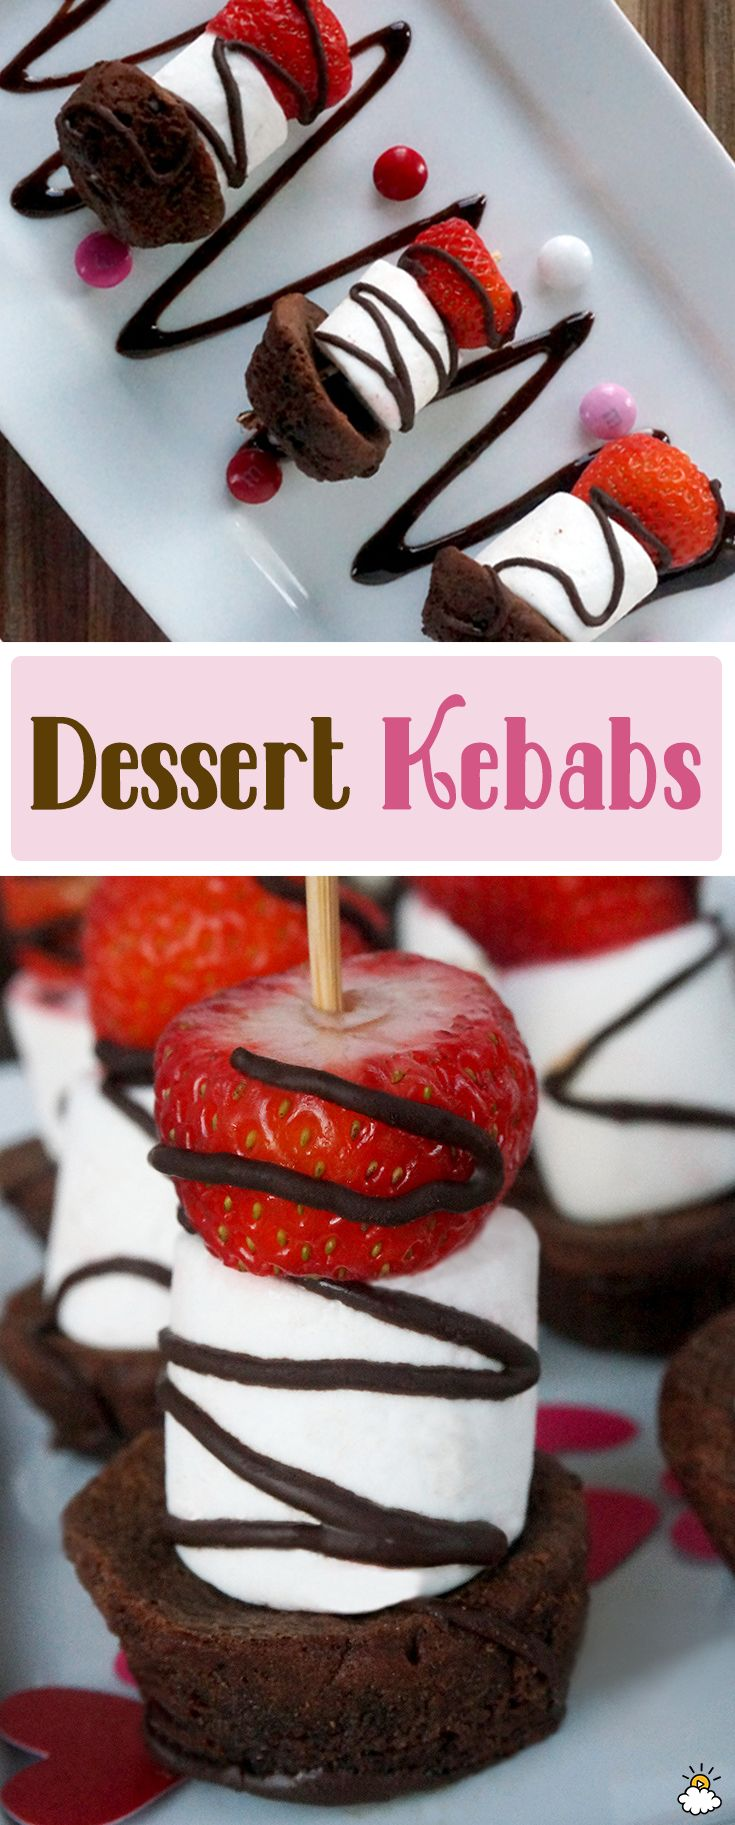 Make dessert time fun with these creative and delicious Dessert Kebabs